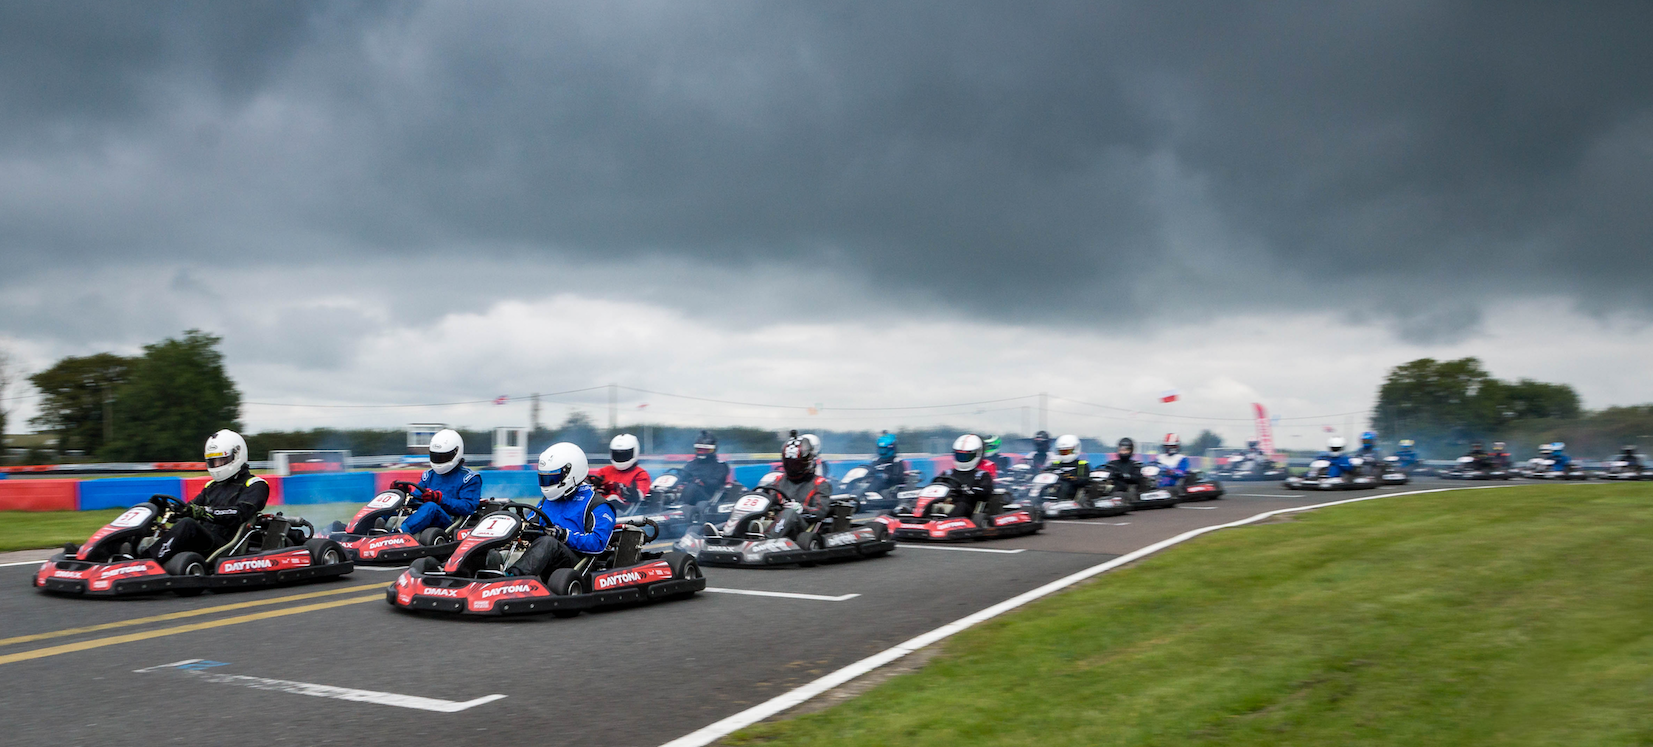 DMAX SHINES AT CLAY PIGEON